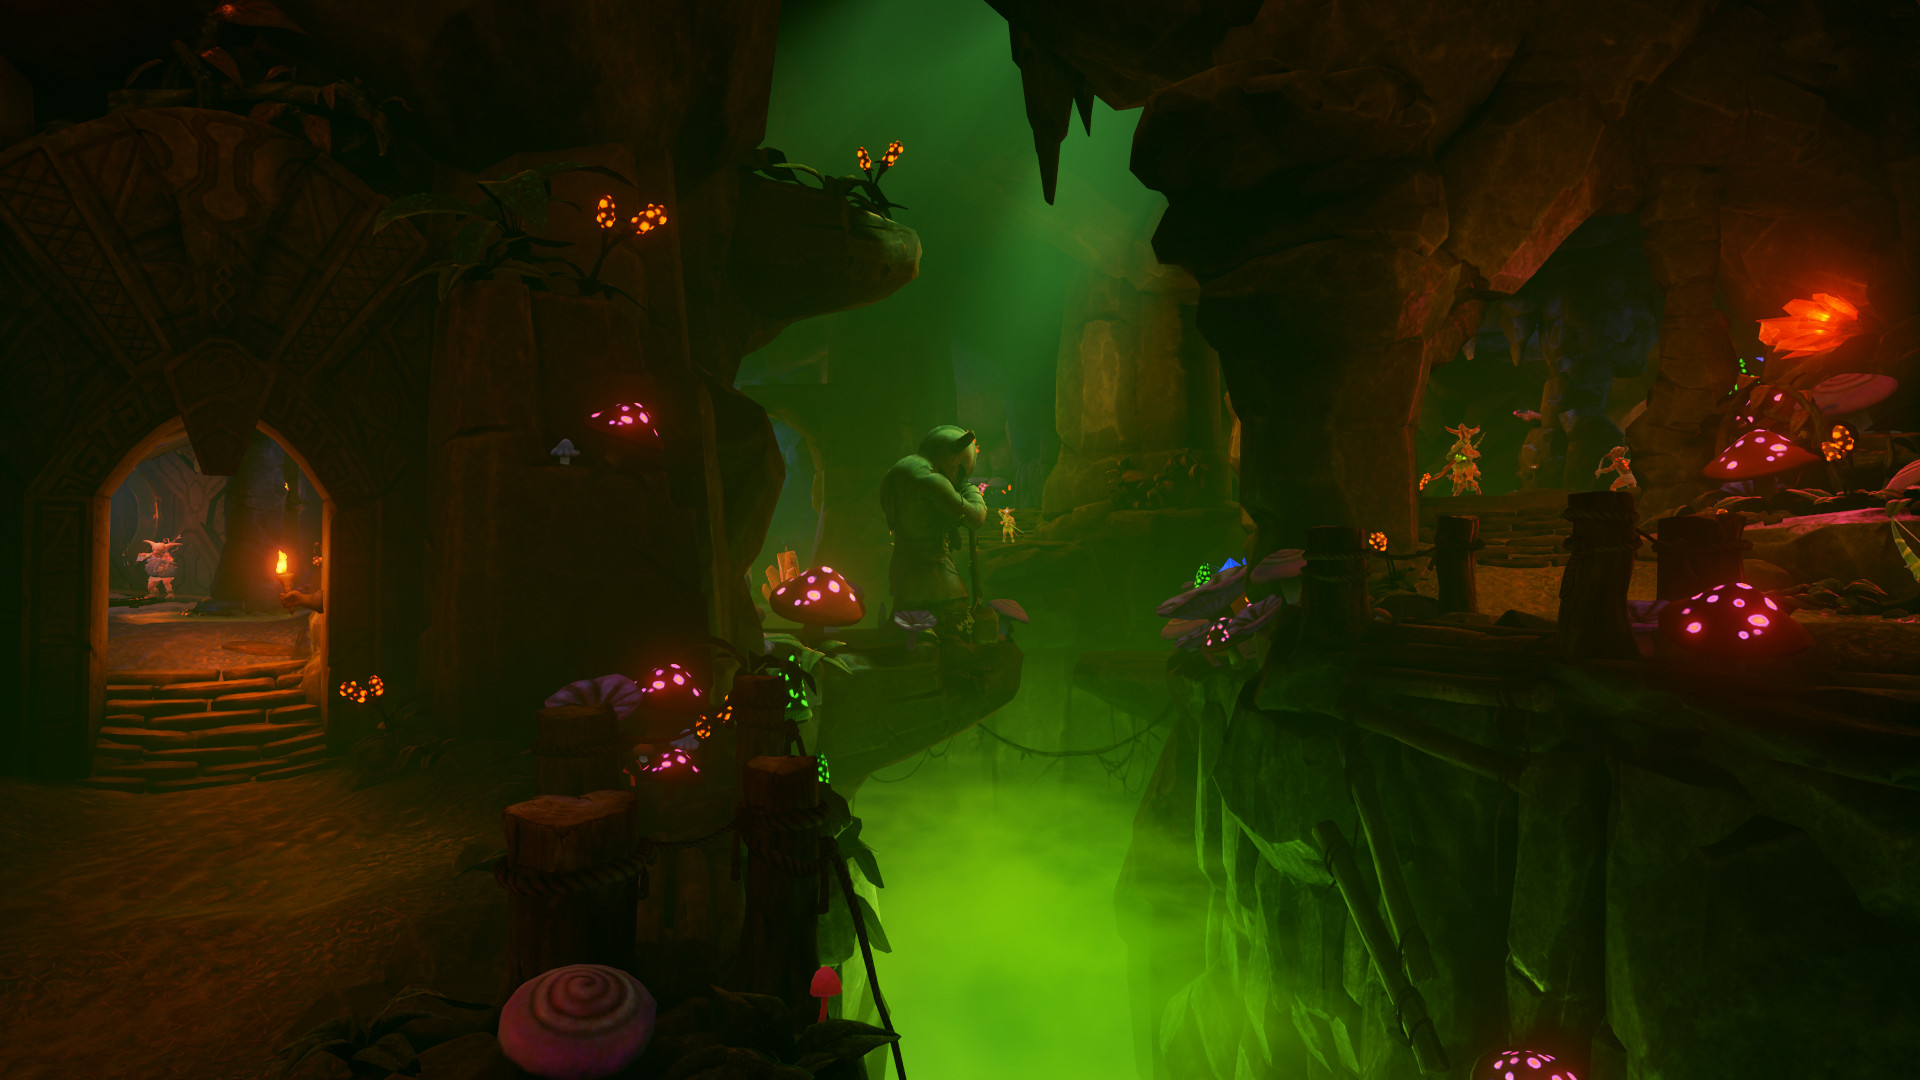 Inside the VR world of Karnage Chronicles by Nordic Trolls VR (Image credit: Nordic Trolls VR)